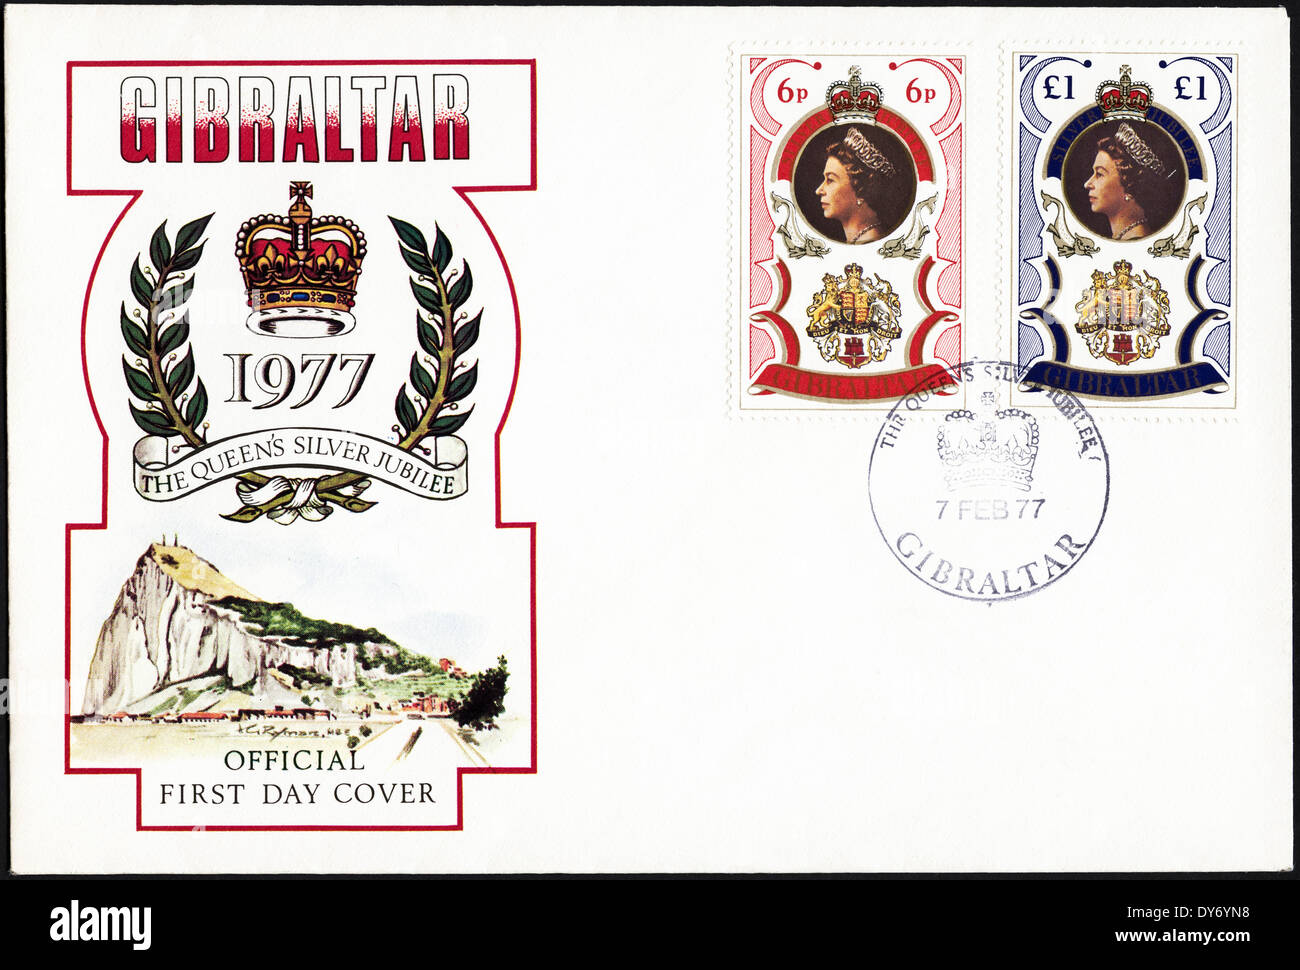 Commemorative first day cover Gibraltar postage stamps The Queen's Silver Jubilee postmarked 7th February 1977 - Stock Image